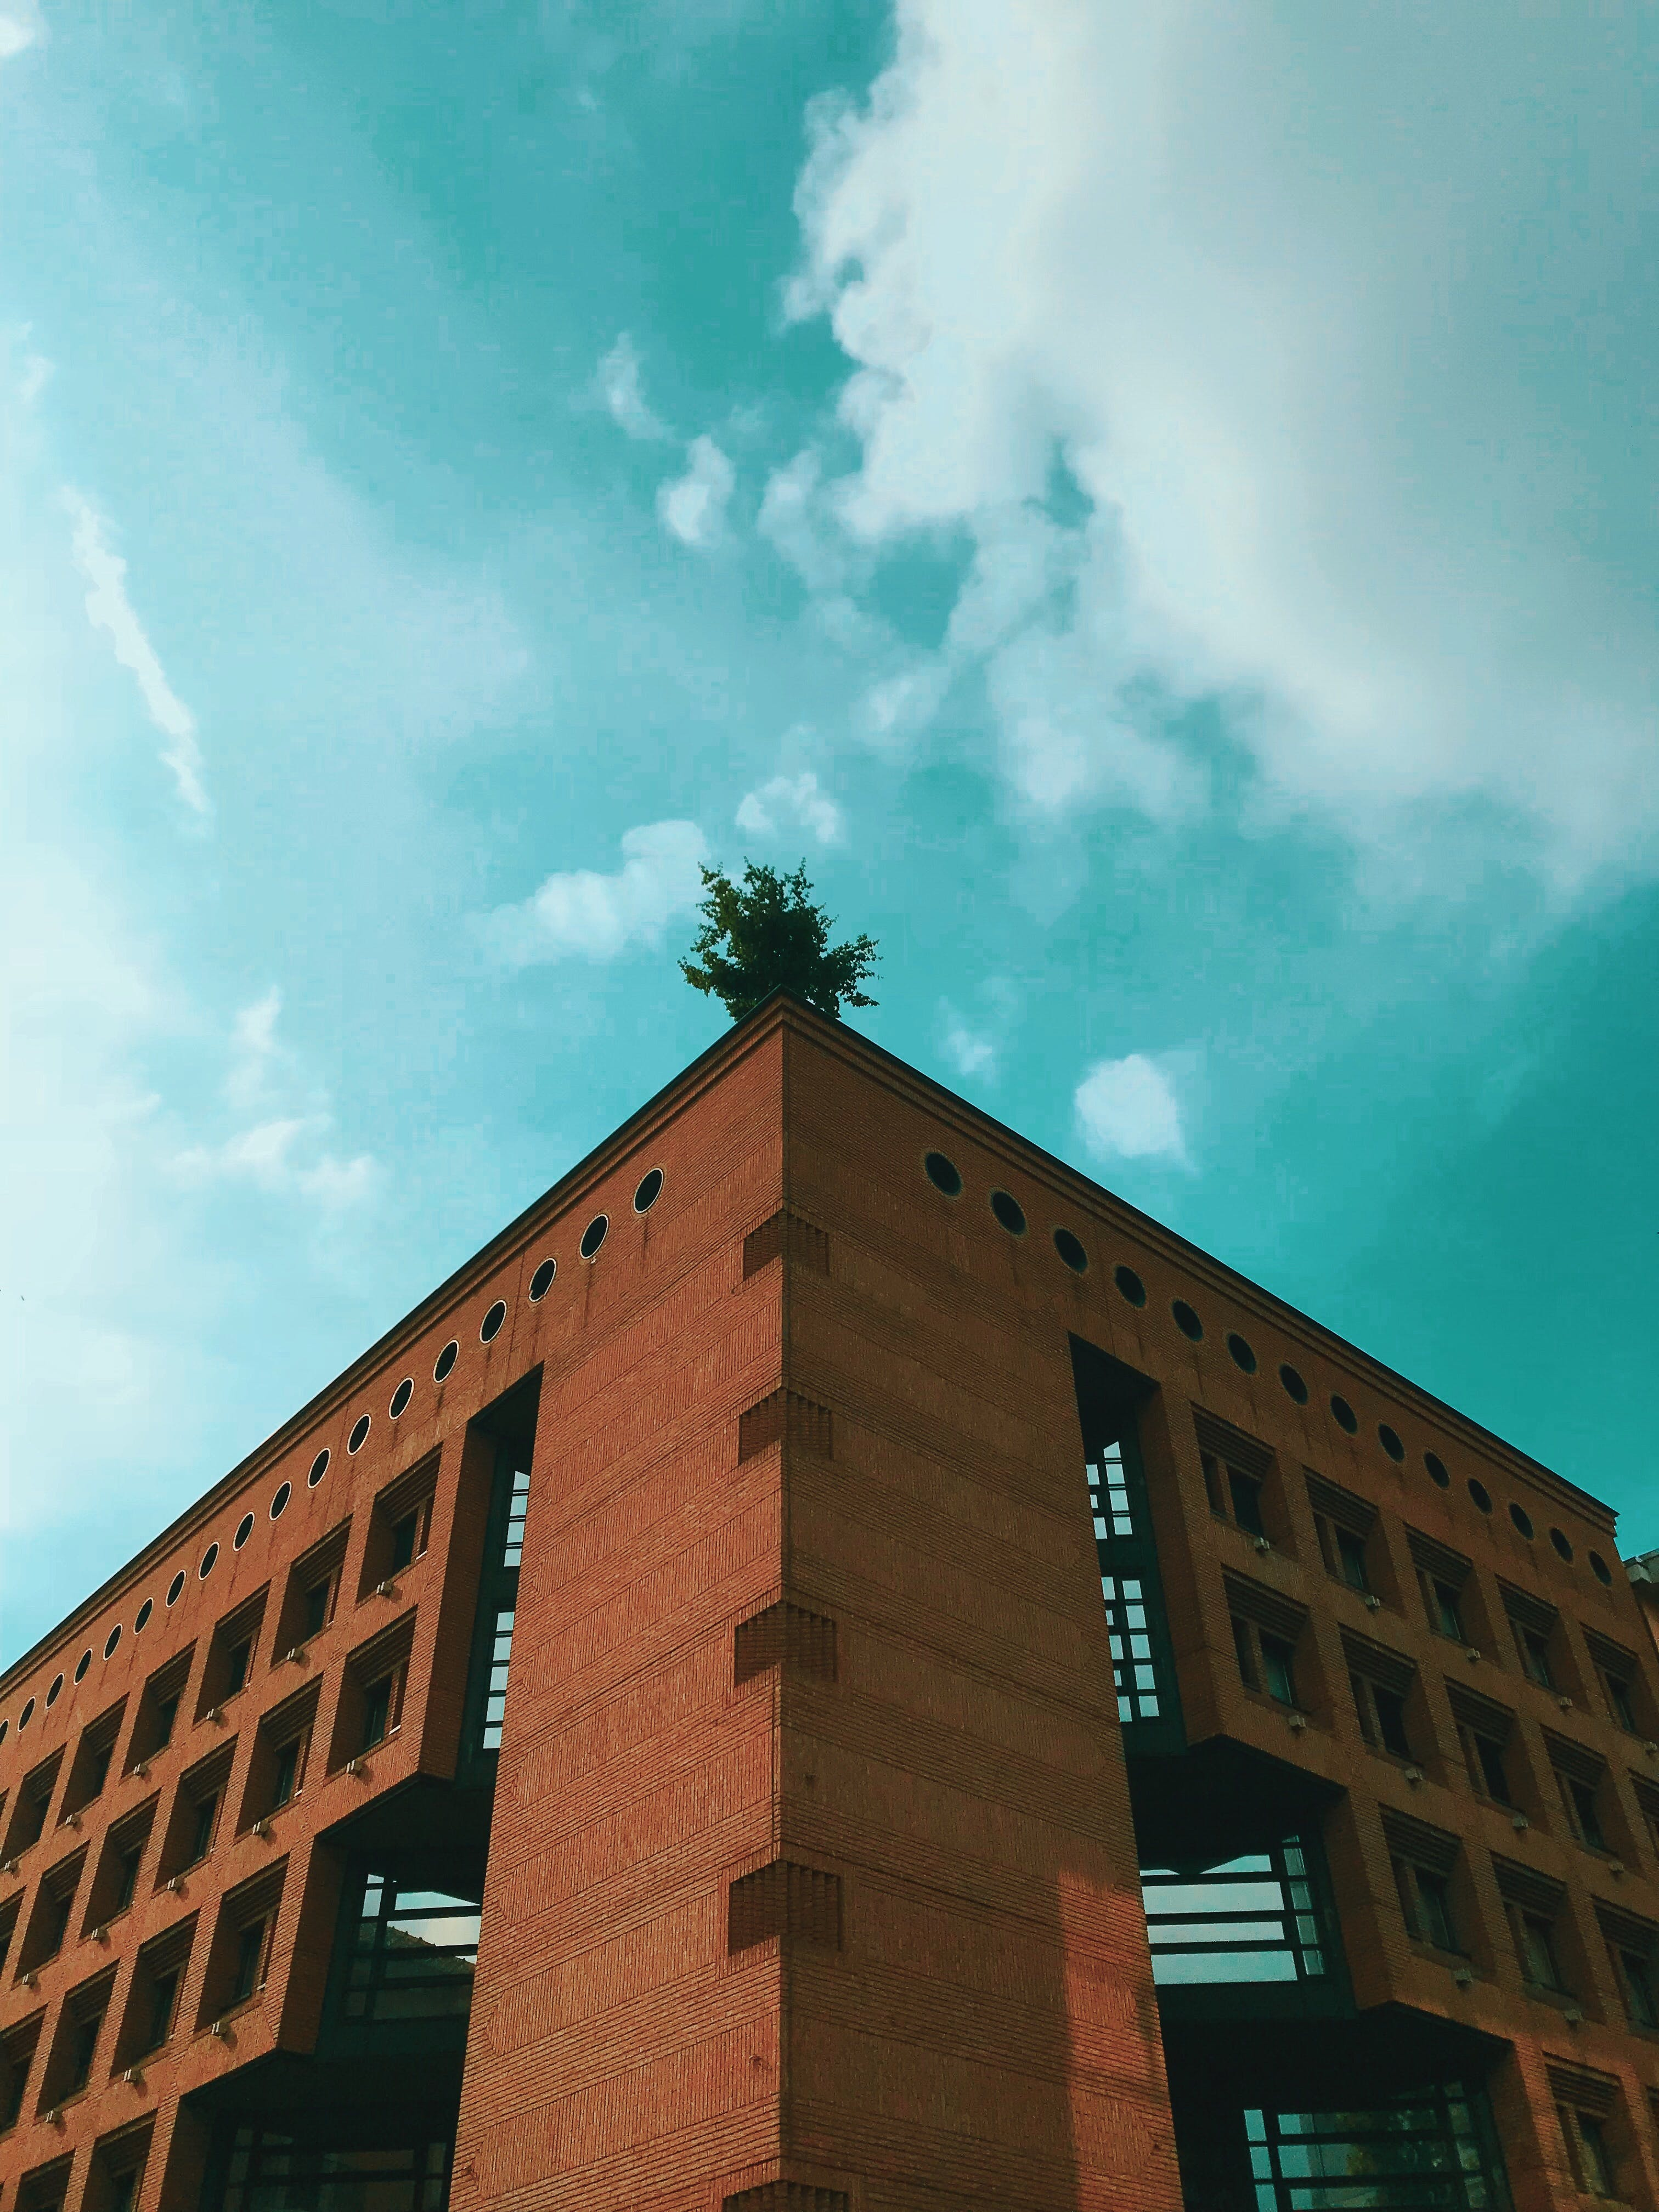 Brown Concrete Building Under Teal and White Cloudy Sky at Daytime